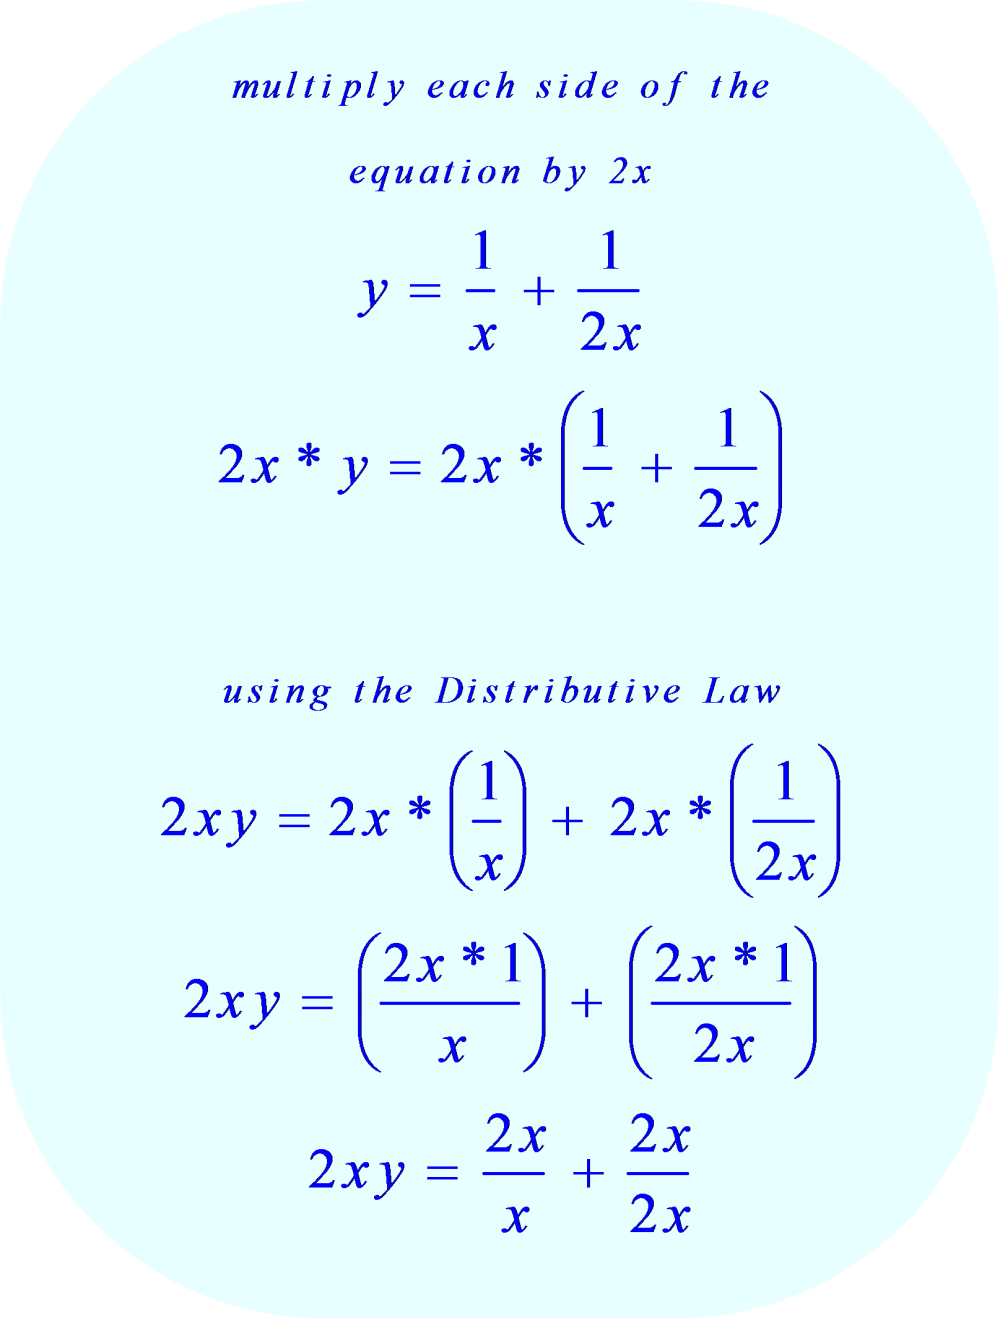 Multiply Each Side Of The Equation By 2x, And Then Apply The Distributive  Law